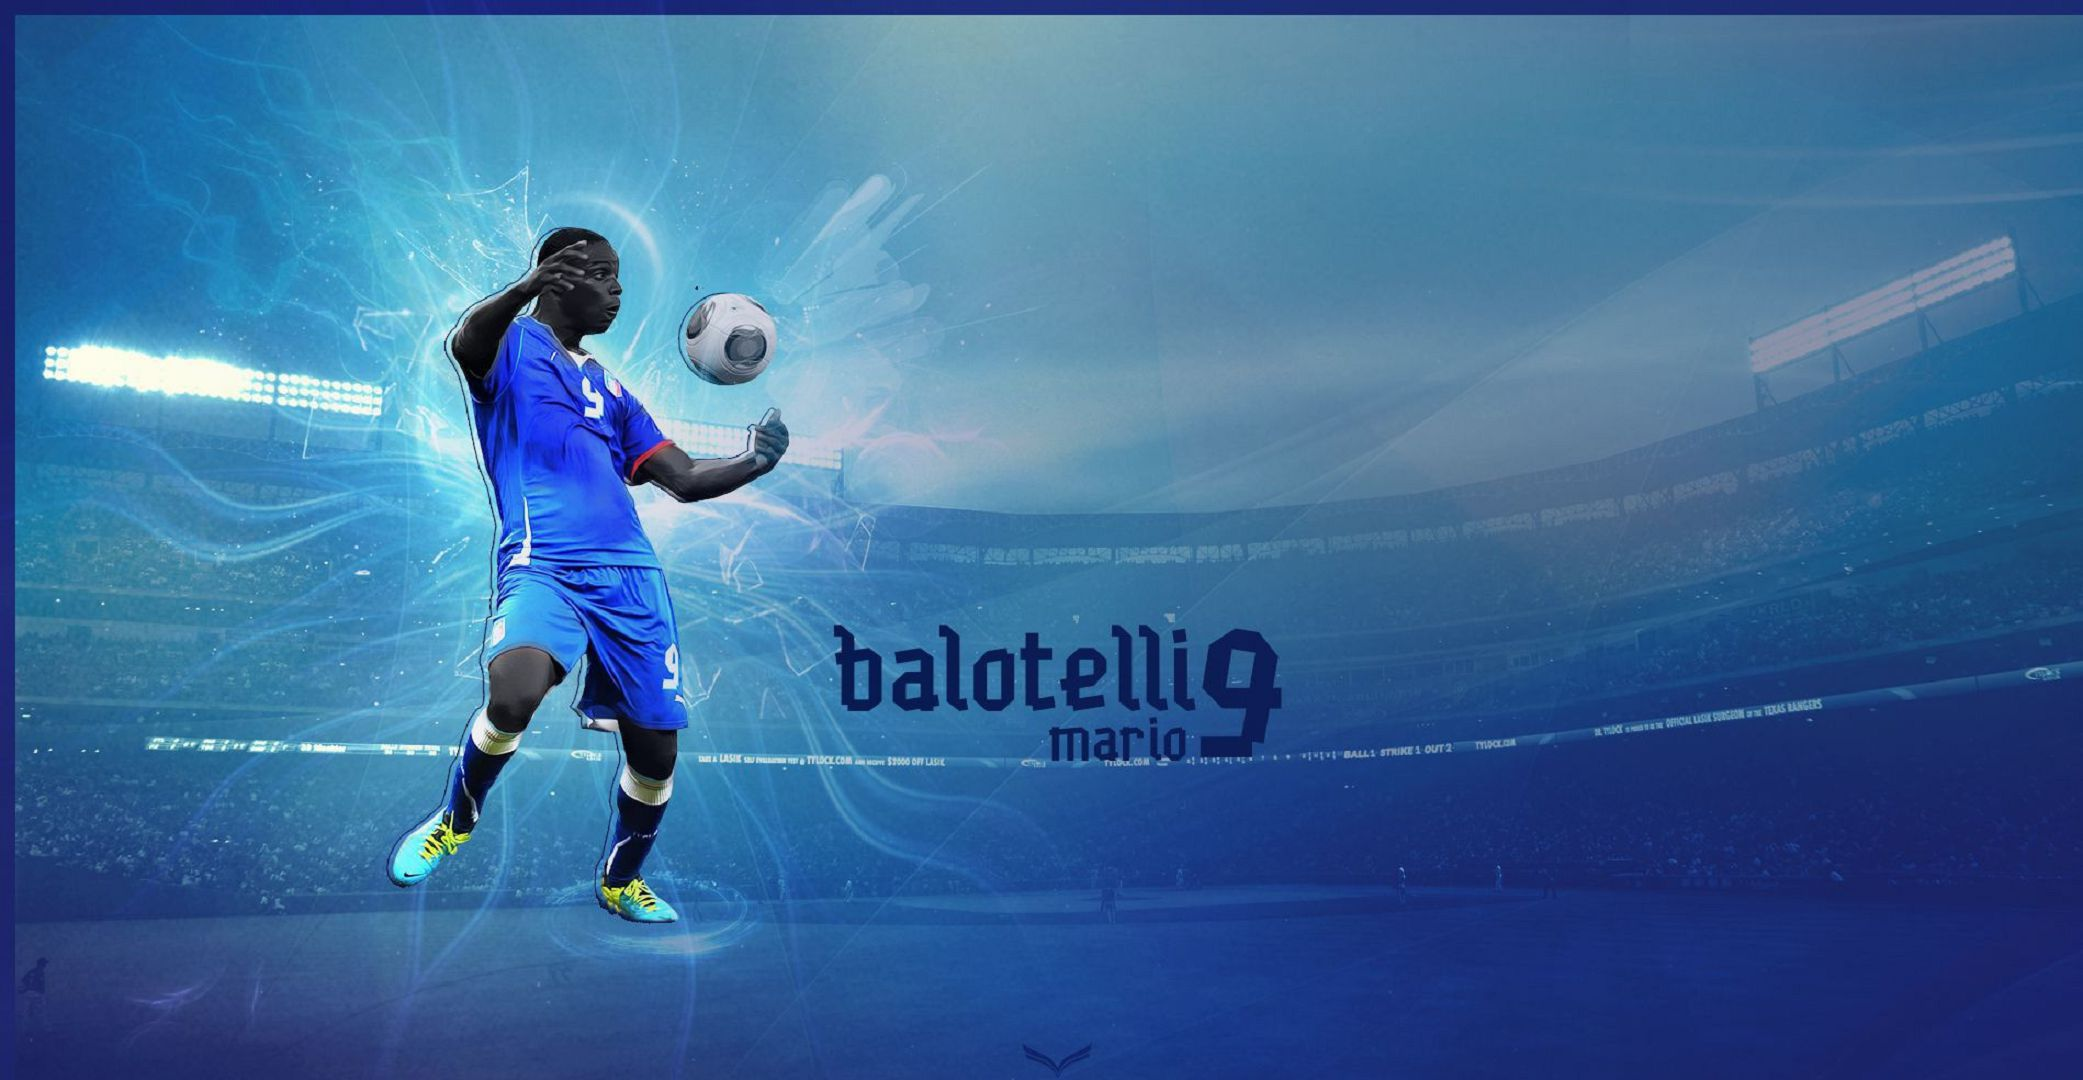 Balotelli Pictures